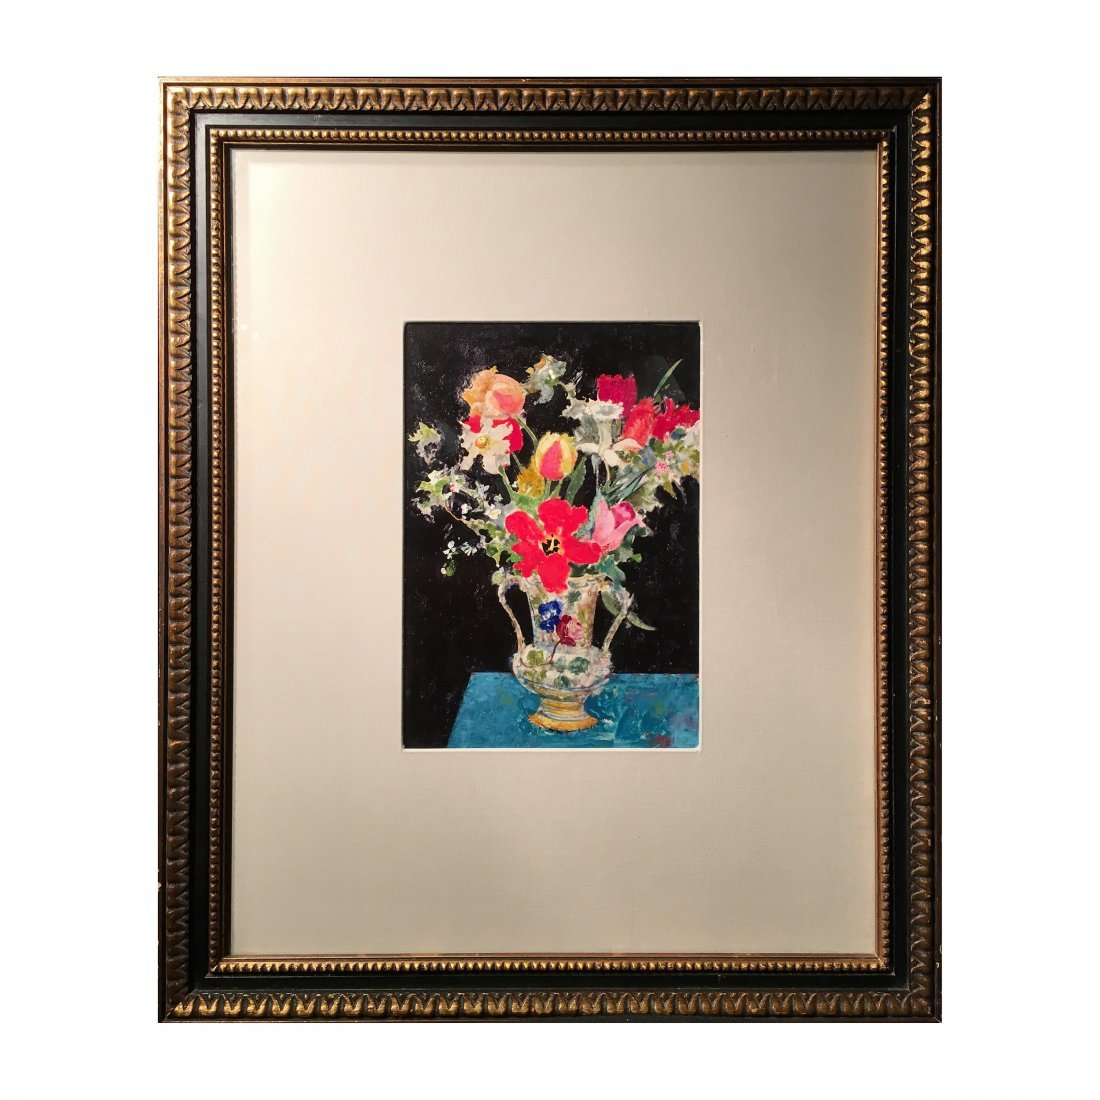 Original Still Life Oil Painting by Richard Jerzy